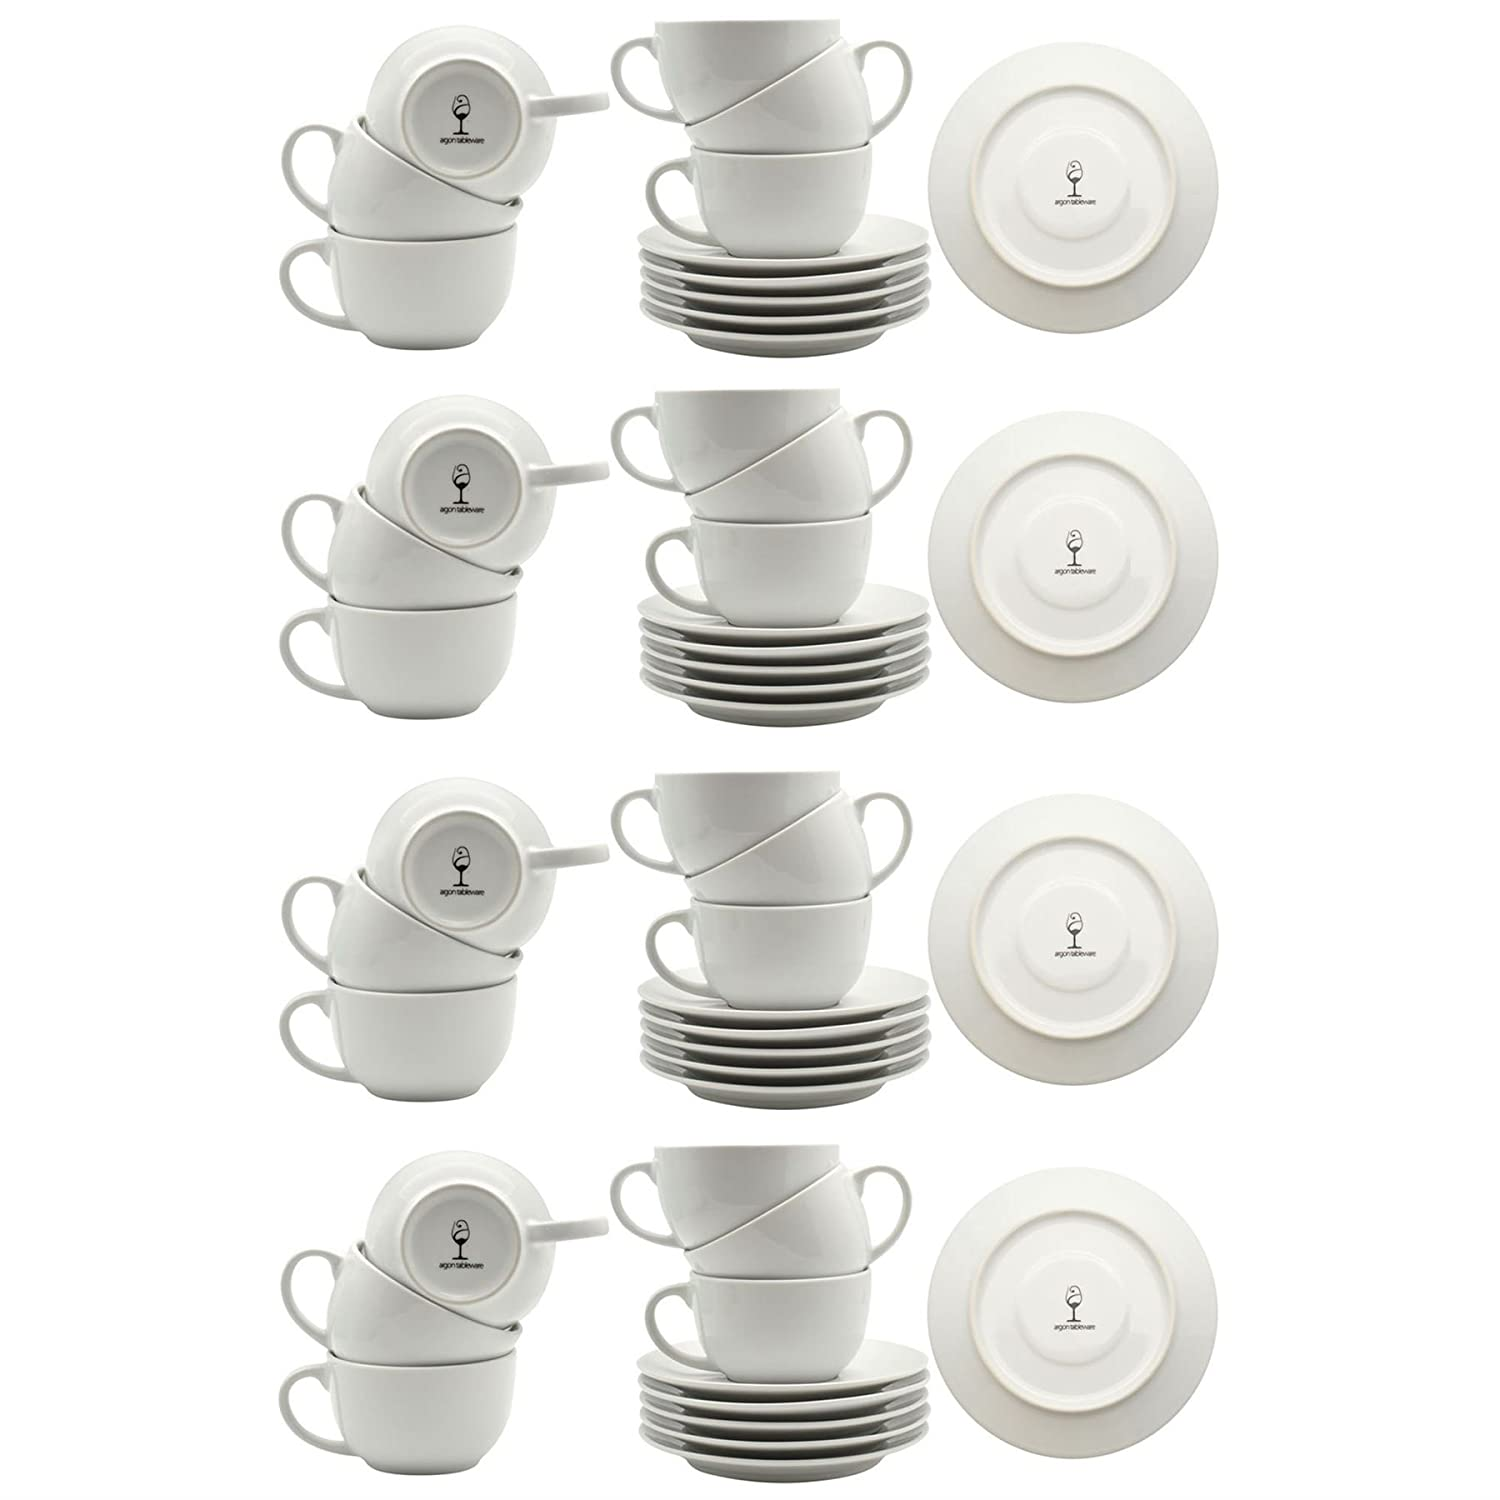 Argon Tableware White Cappuccino Large Coffee Cup/Saucer Set - 320ml (11oz) - Set of 24